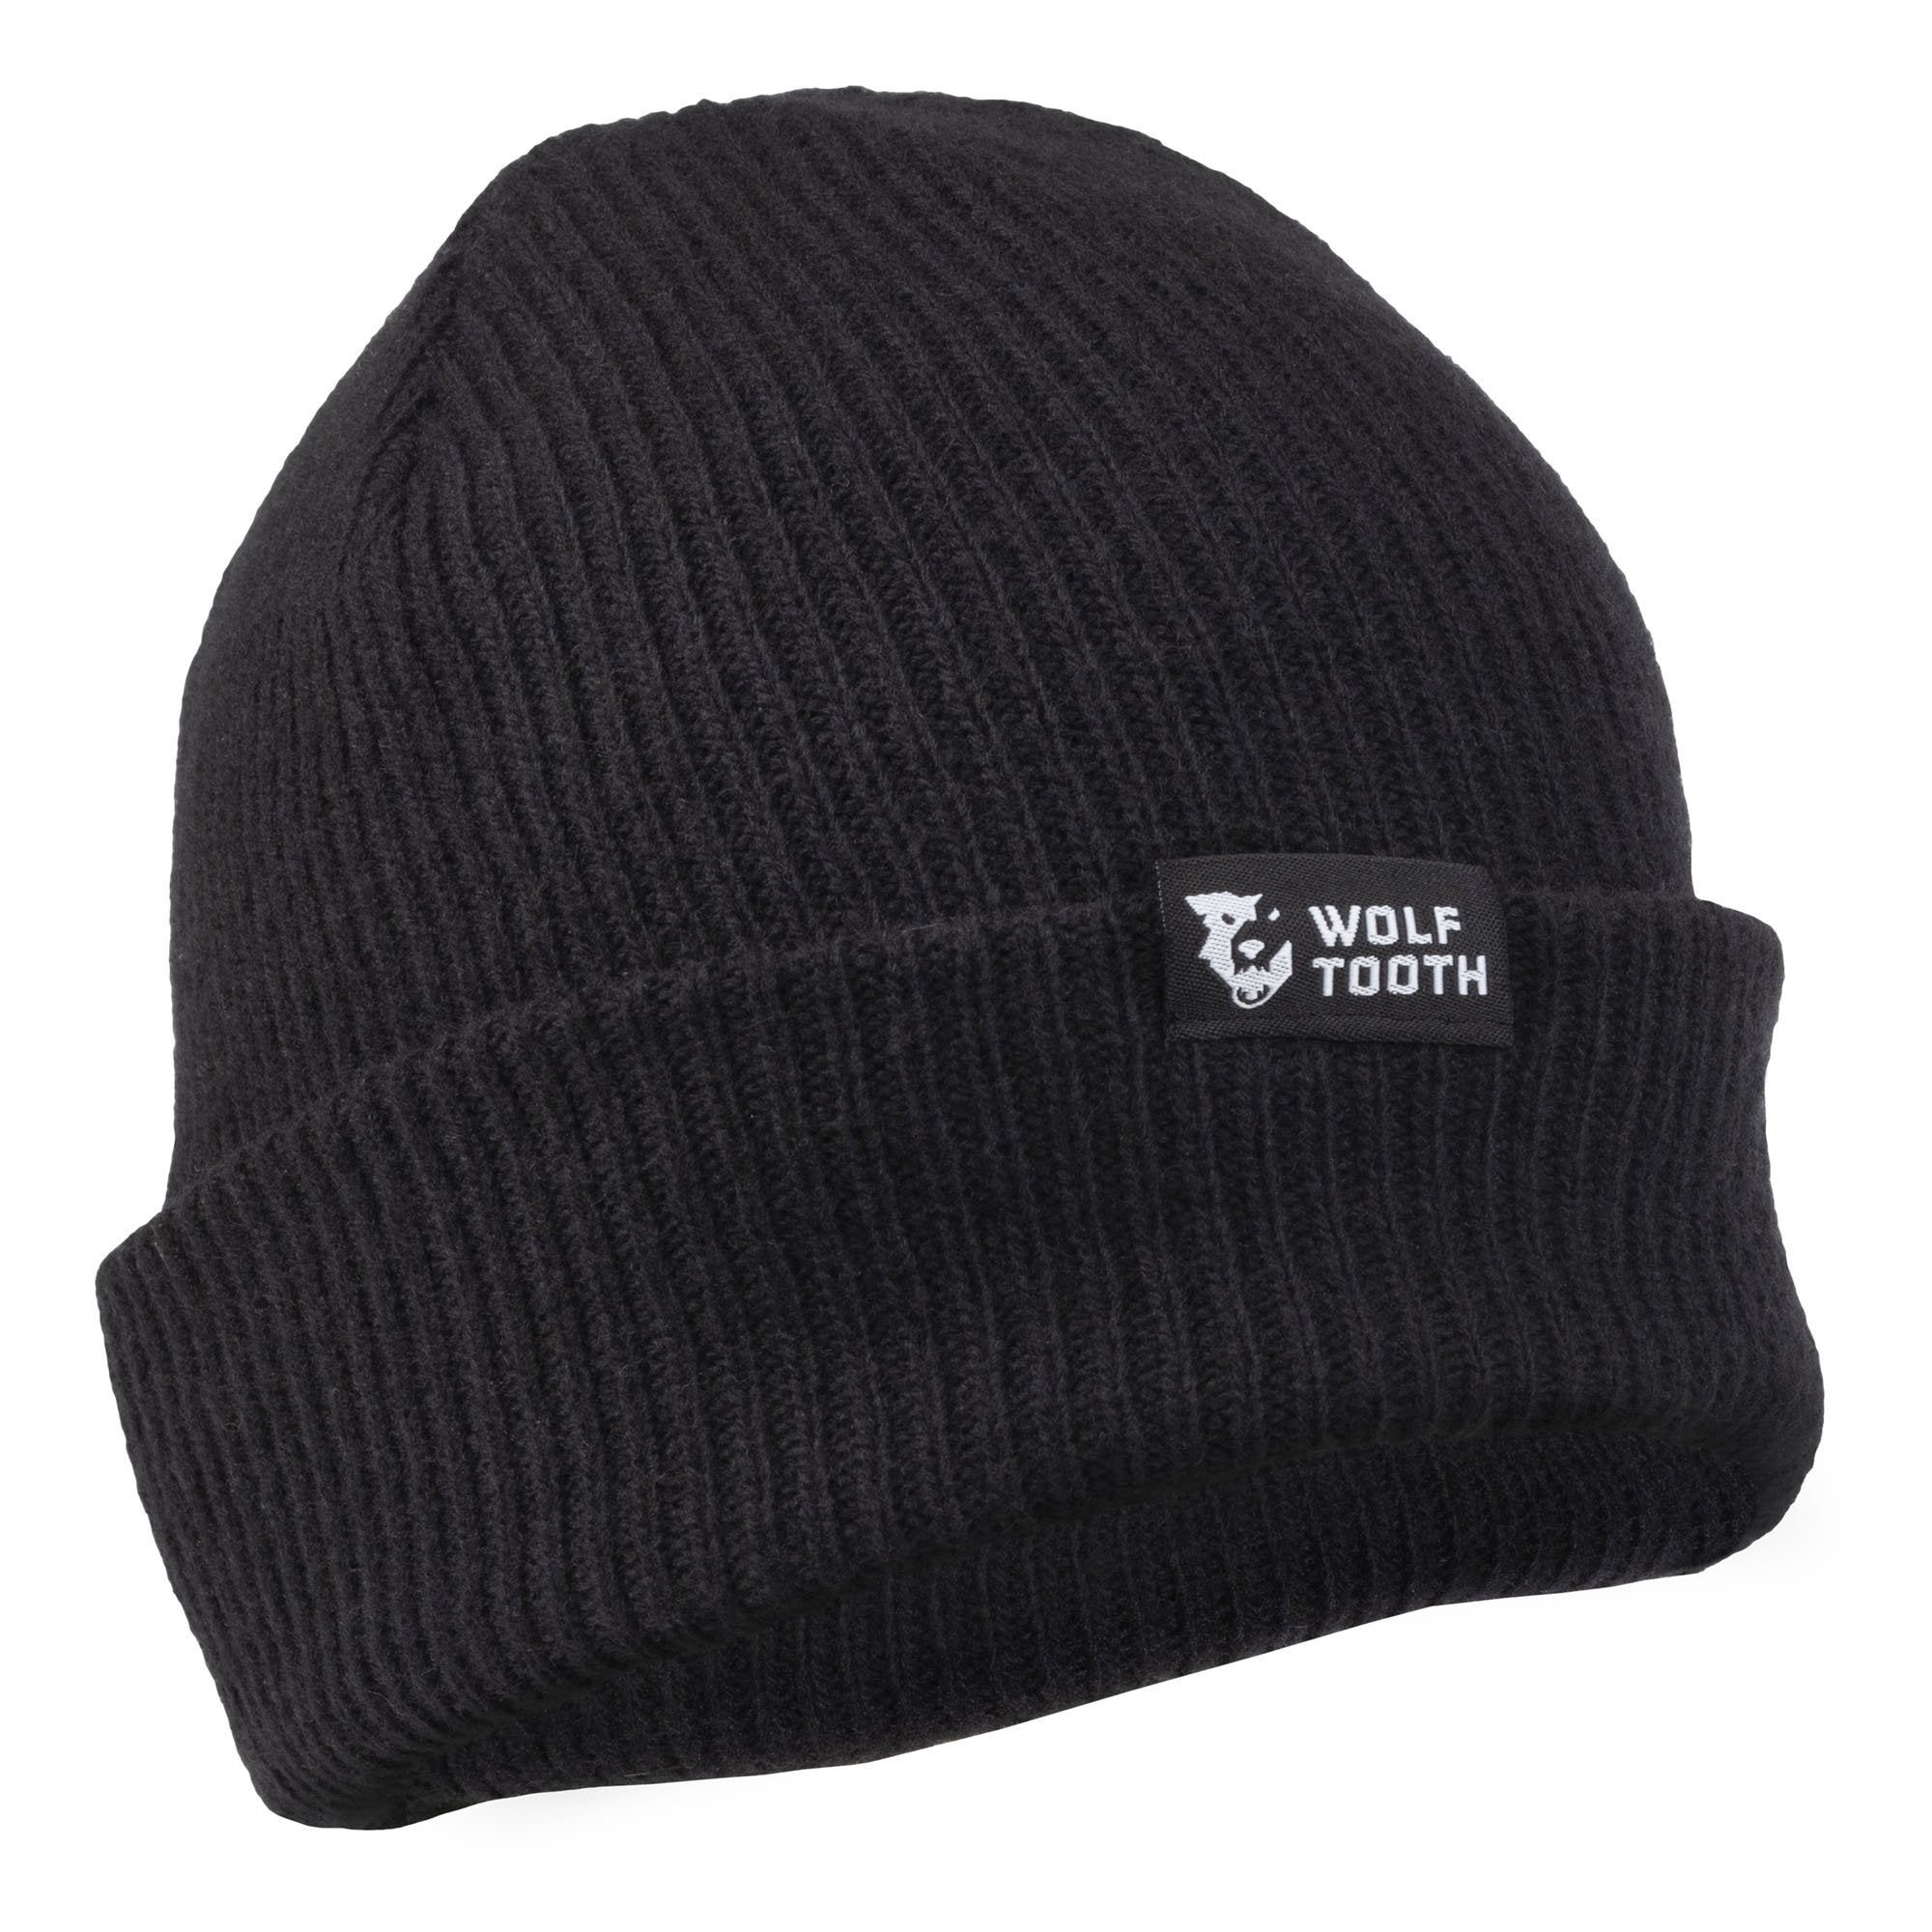 Wolf Tooth Components Merino Wool Watch Hat - RideCX cyclocross store